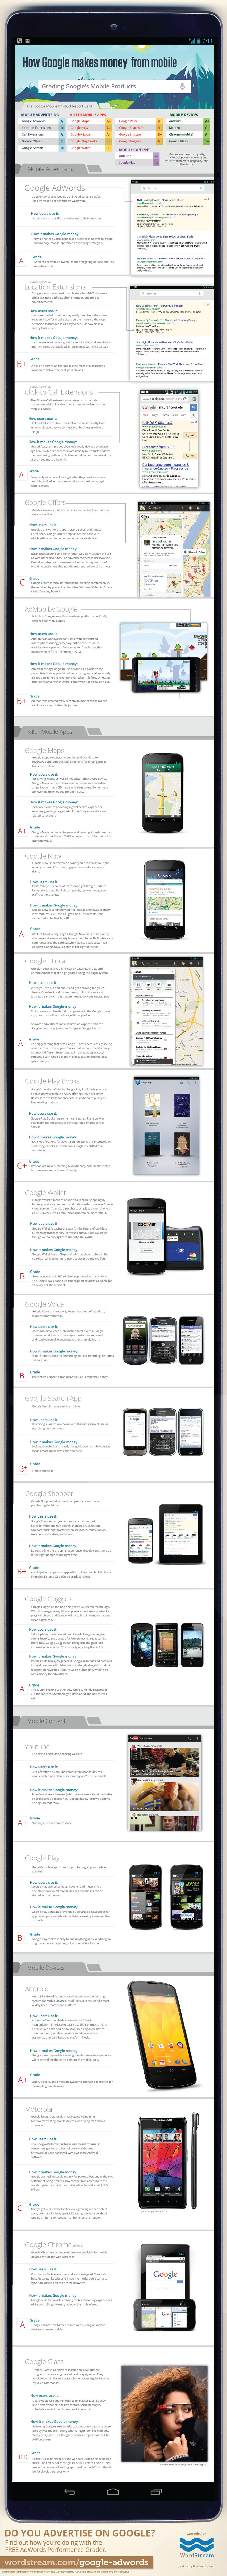 Google for Mobile Infographic